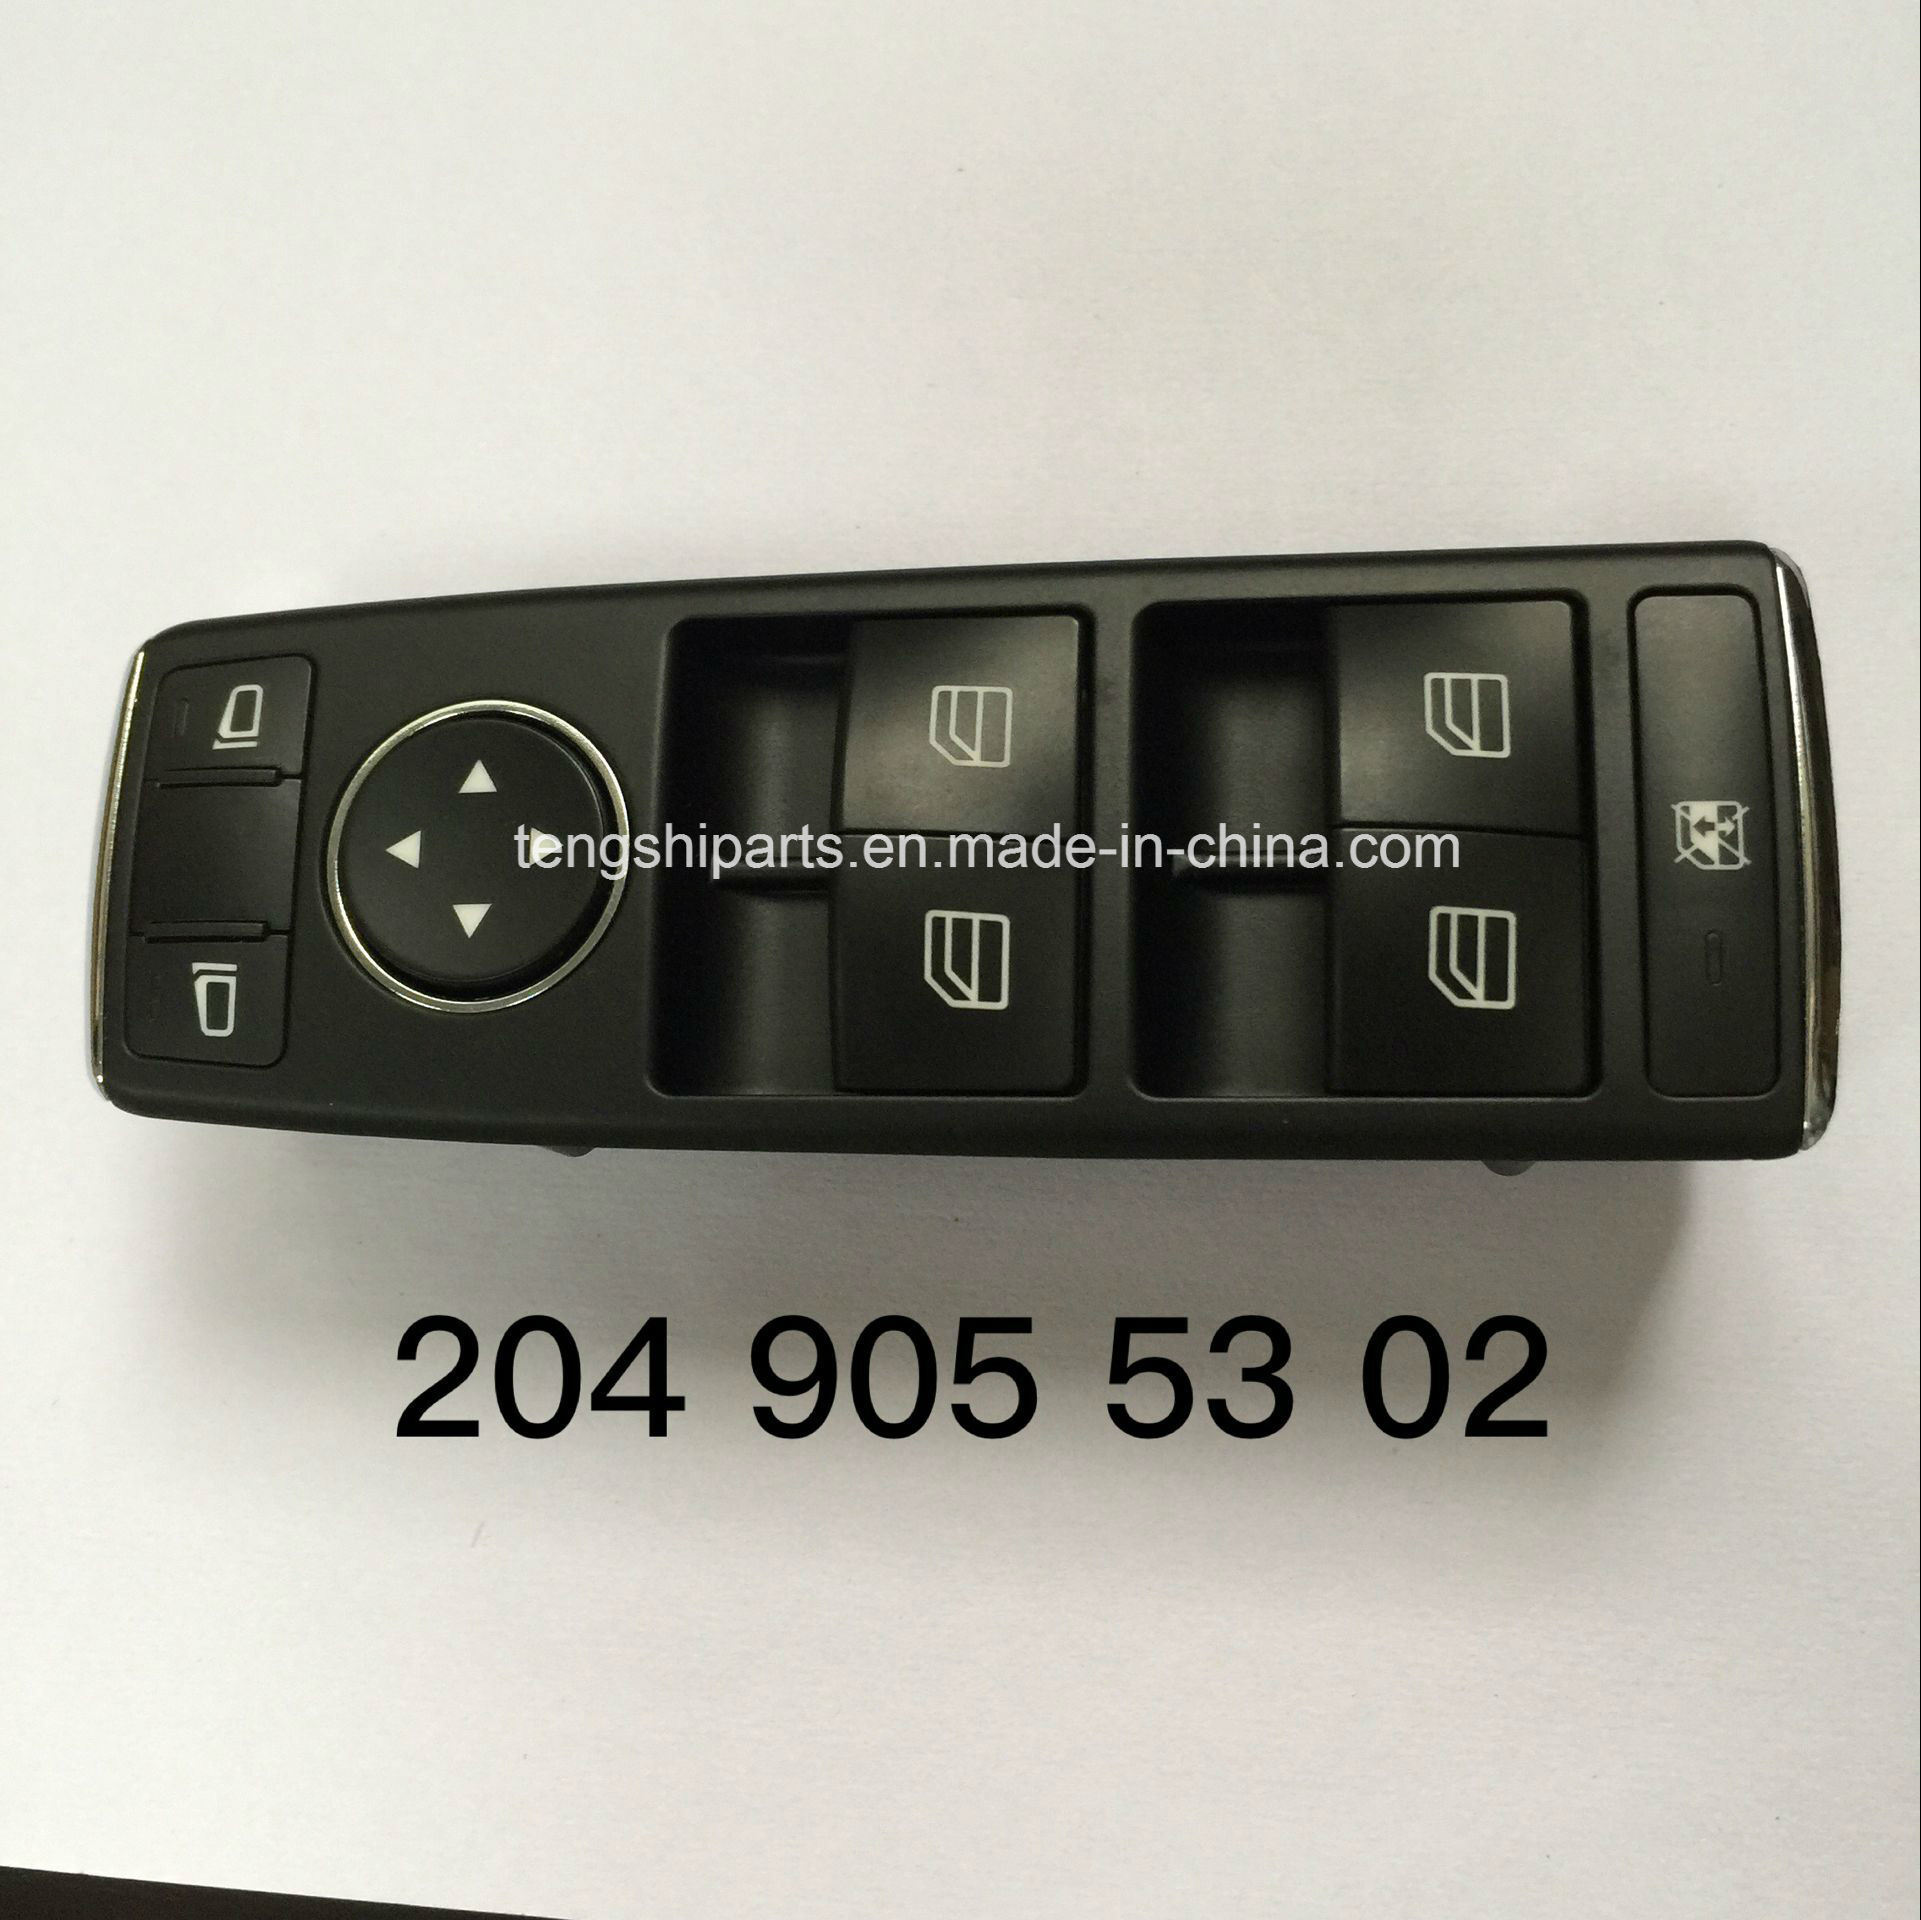 China Auto Parts New Power Window Switch For Mercedes Ml350 Ml500 Benz 2005 Ml63 G500 G550 G55